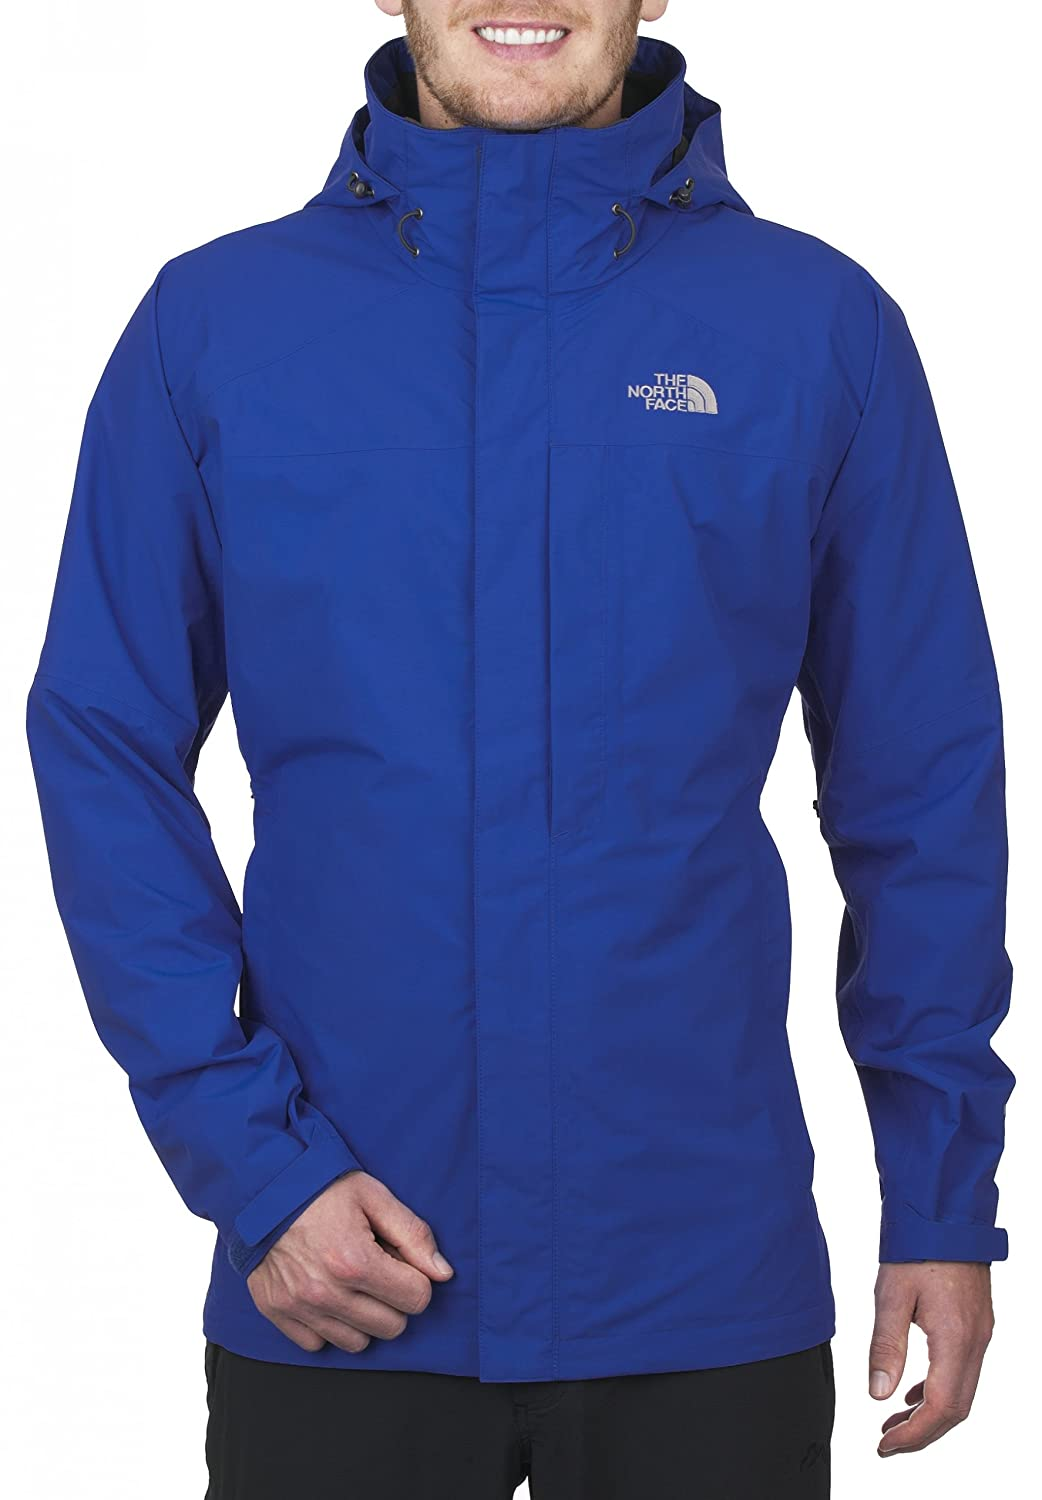 The North Face Regenjacke Men's Cirrus Jacket nautical blue (Größe: XL) günstig online kaufen